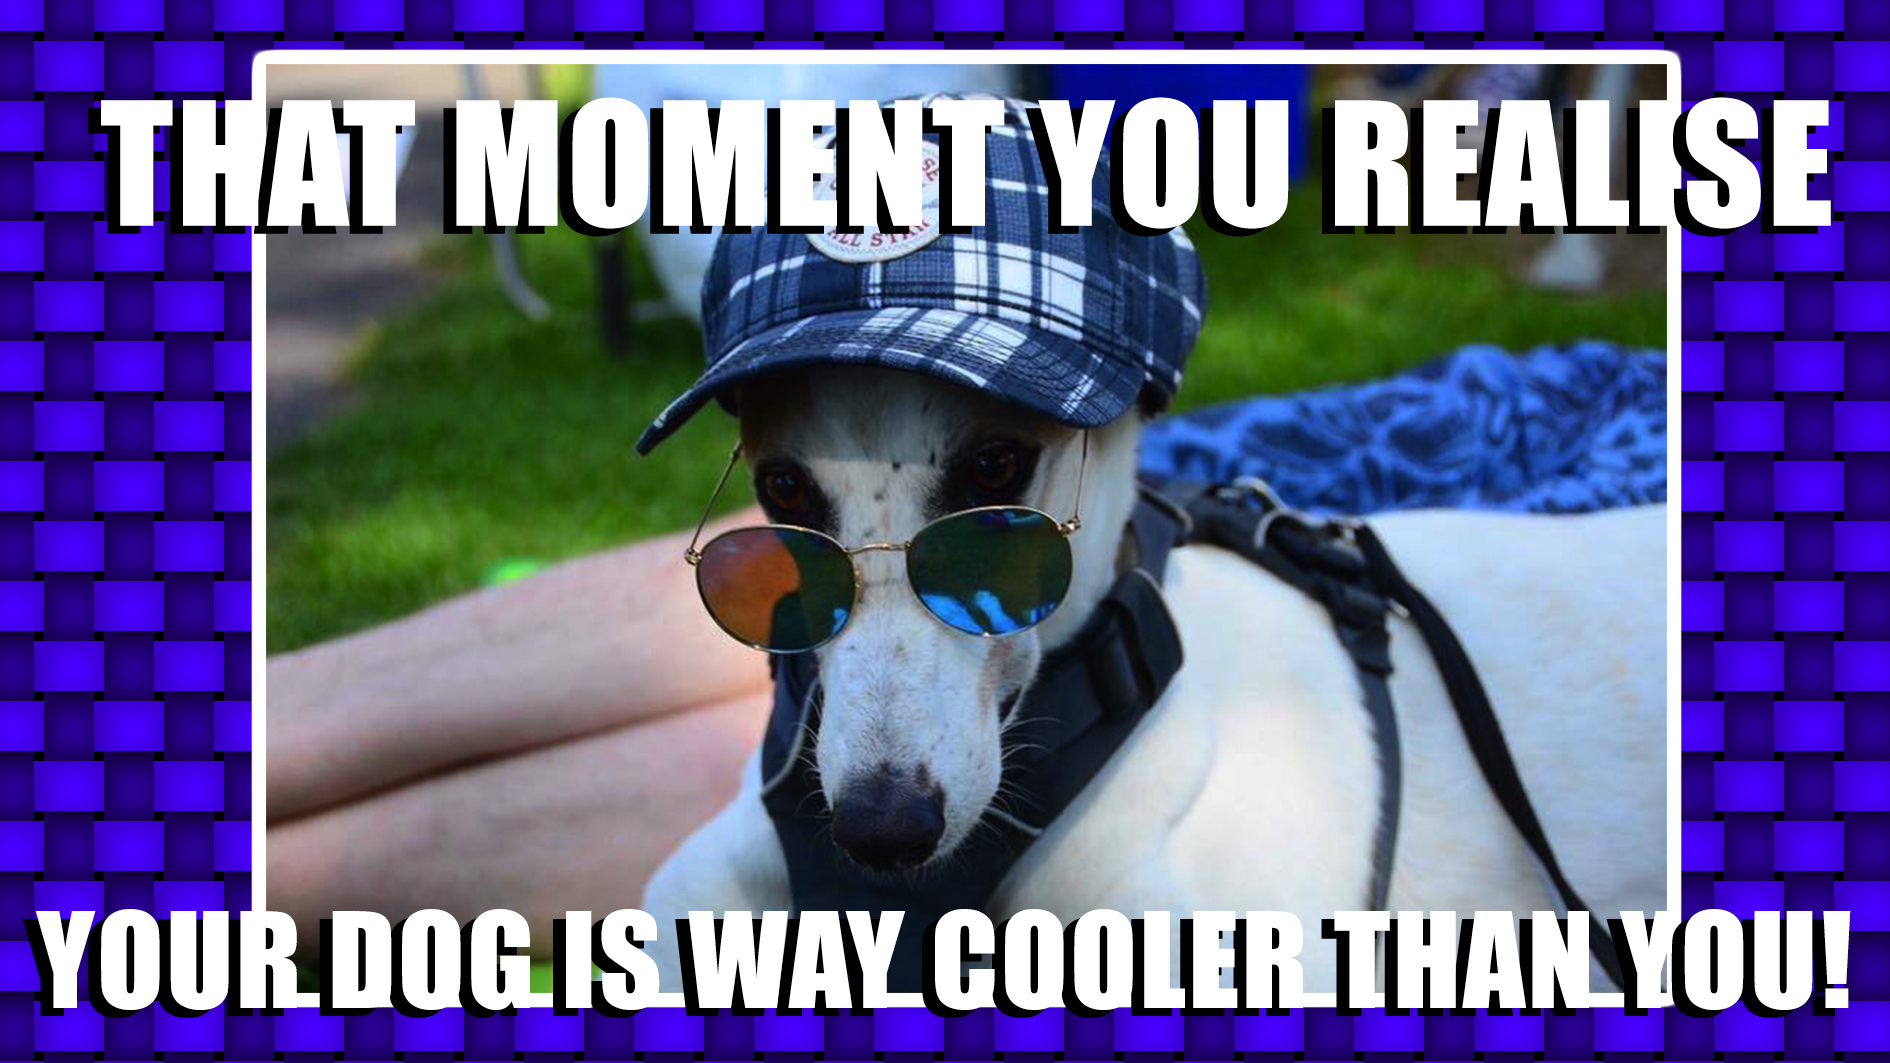 Meme featuring dog wearing sunglasses